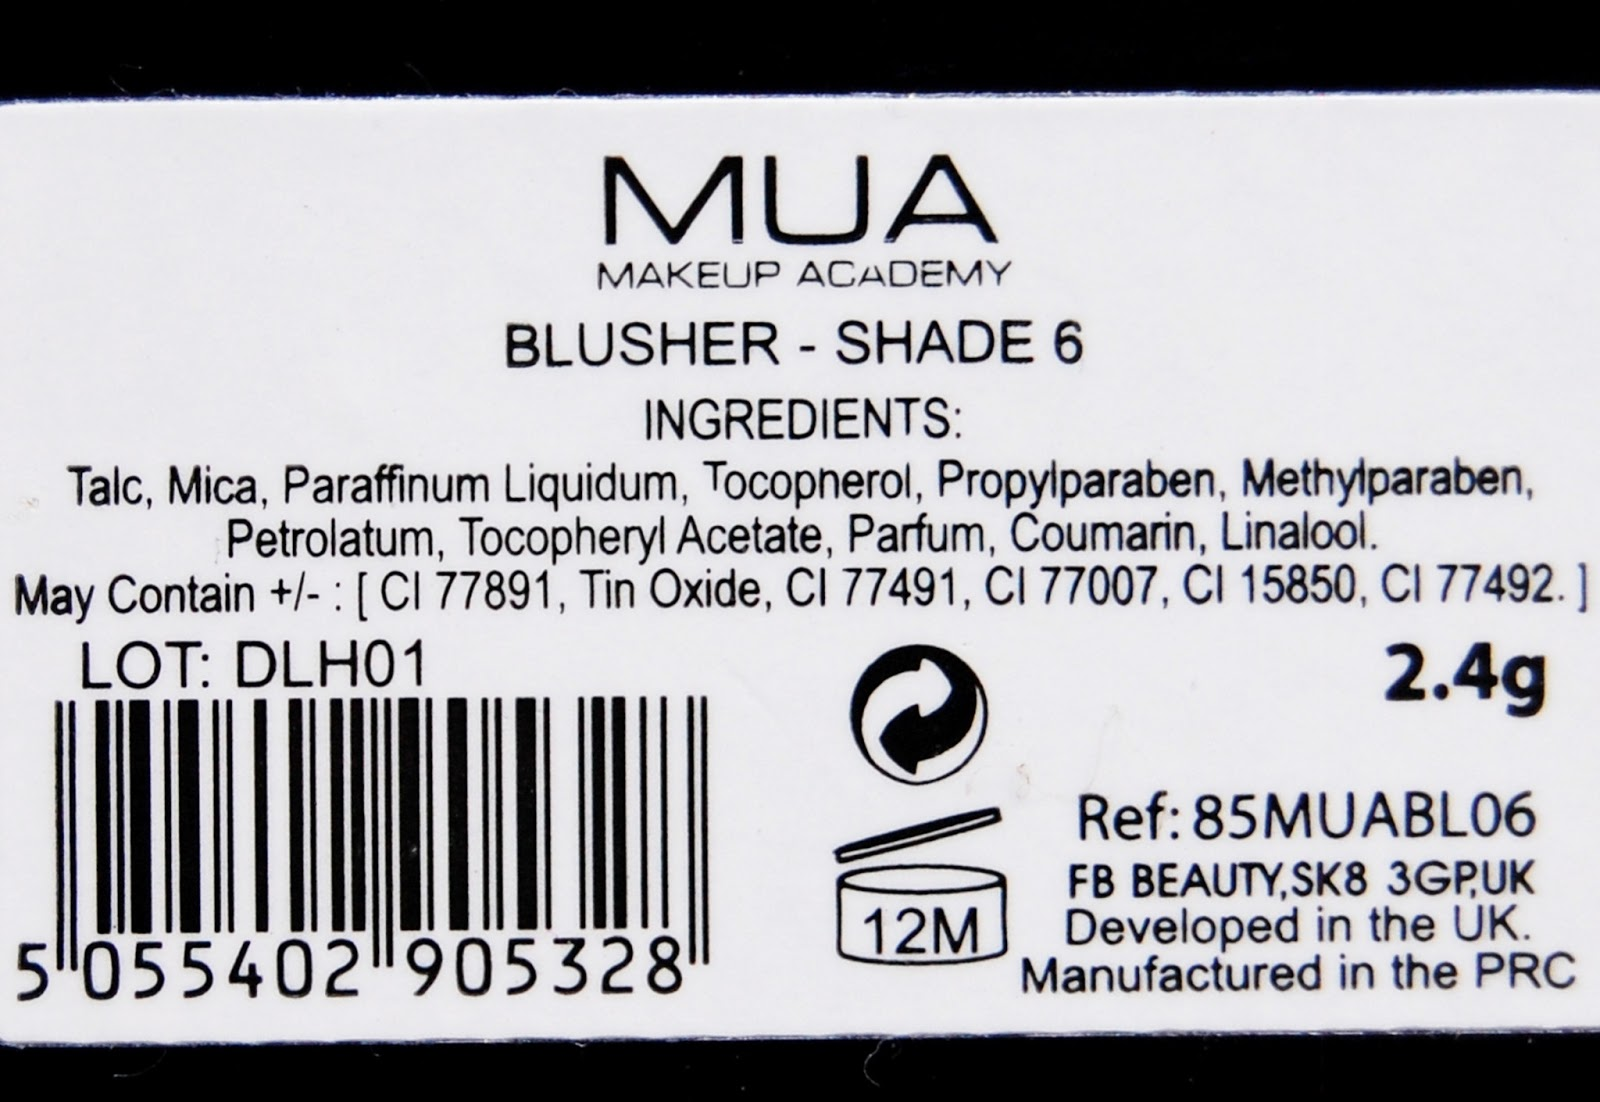 MUA Blusher Shade 6 ingredients